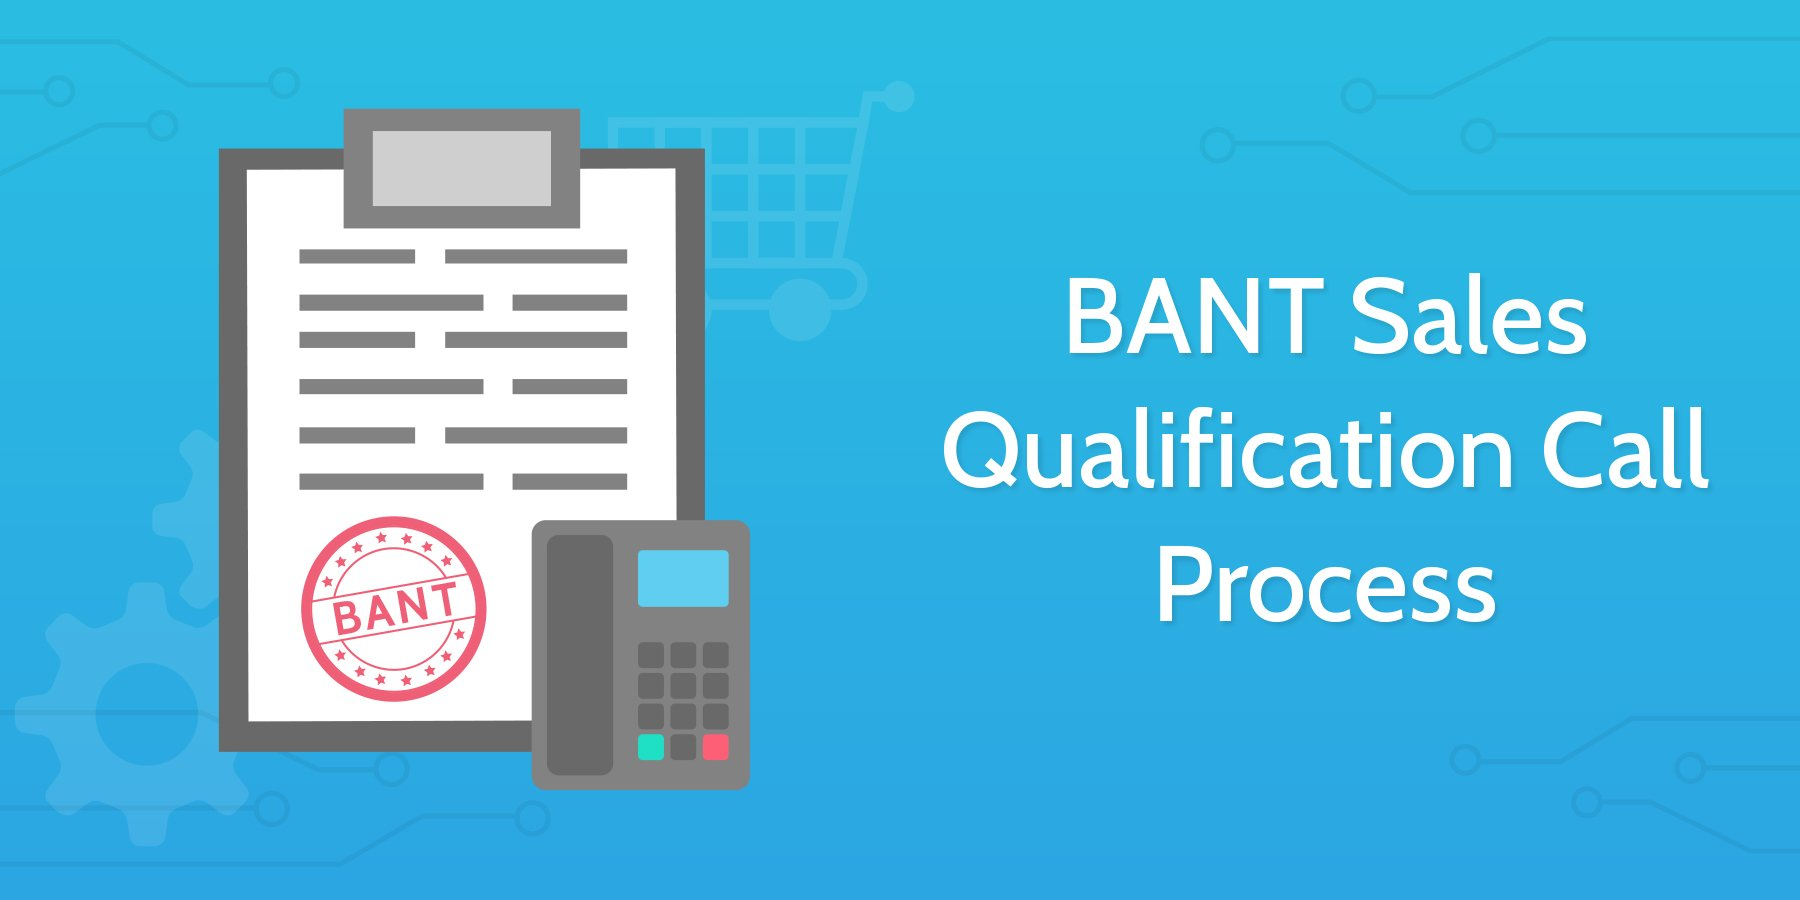 bant-sales-qualification-call-process